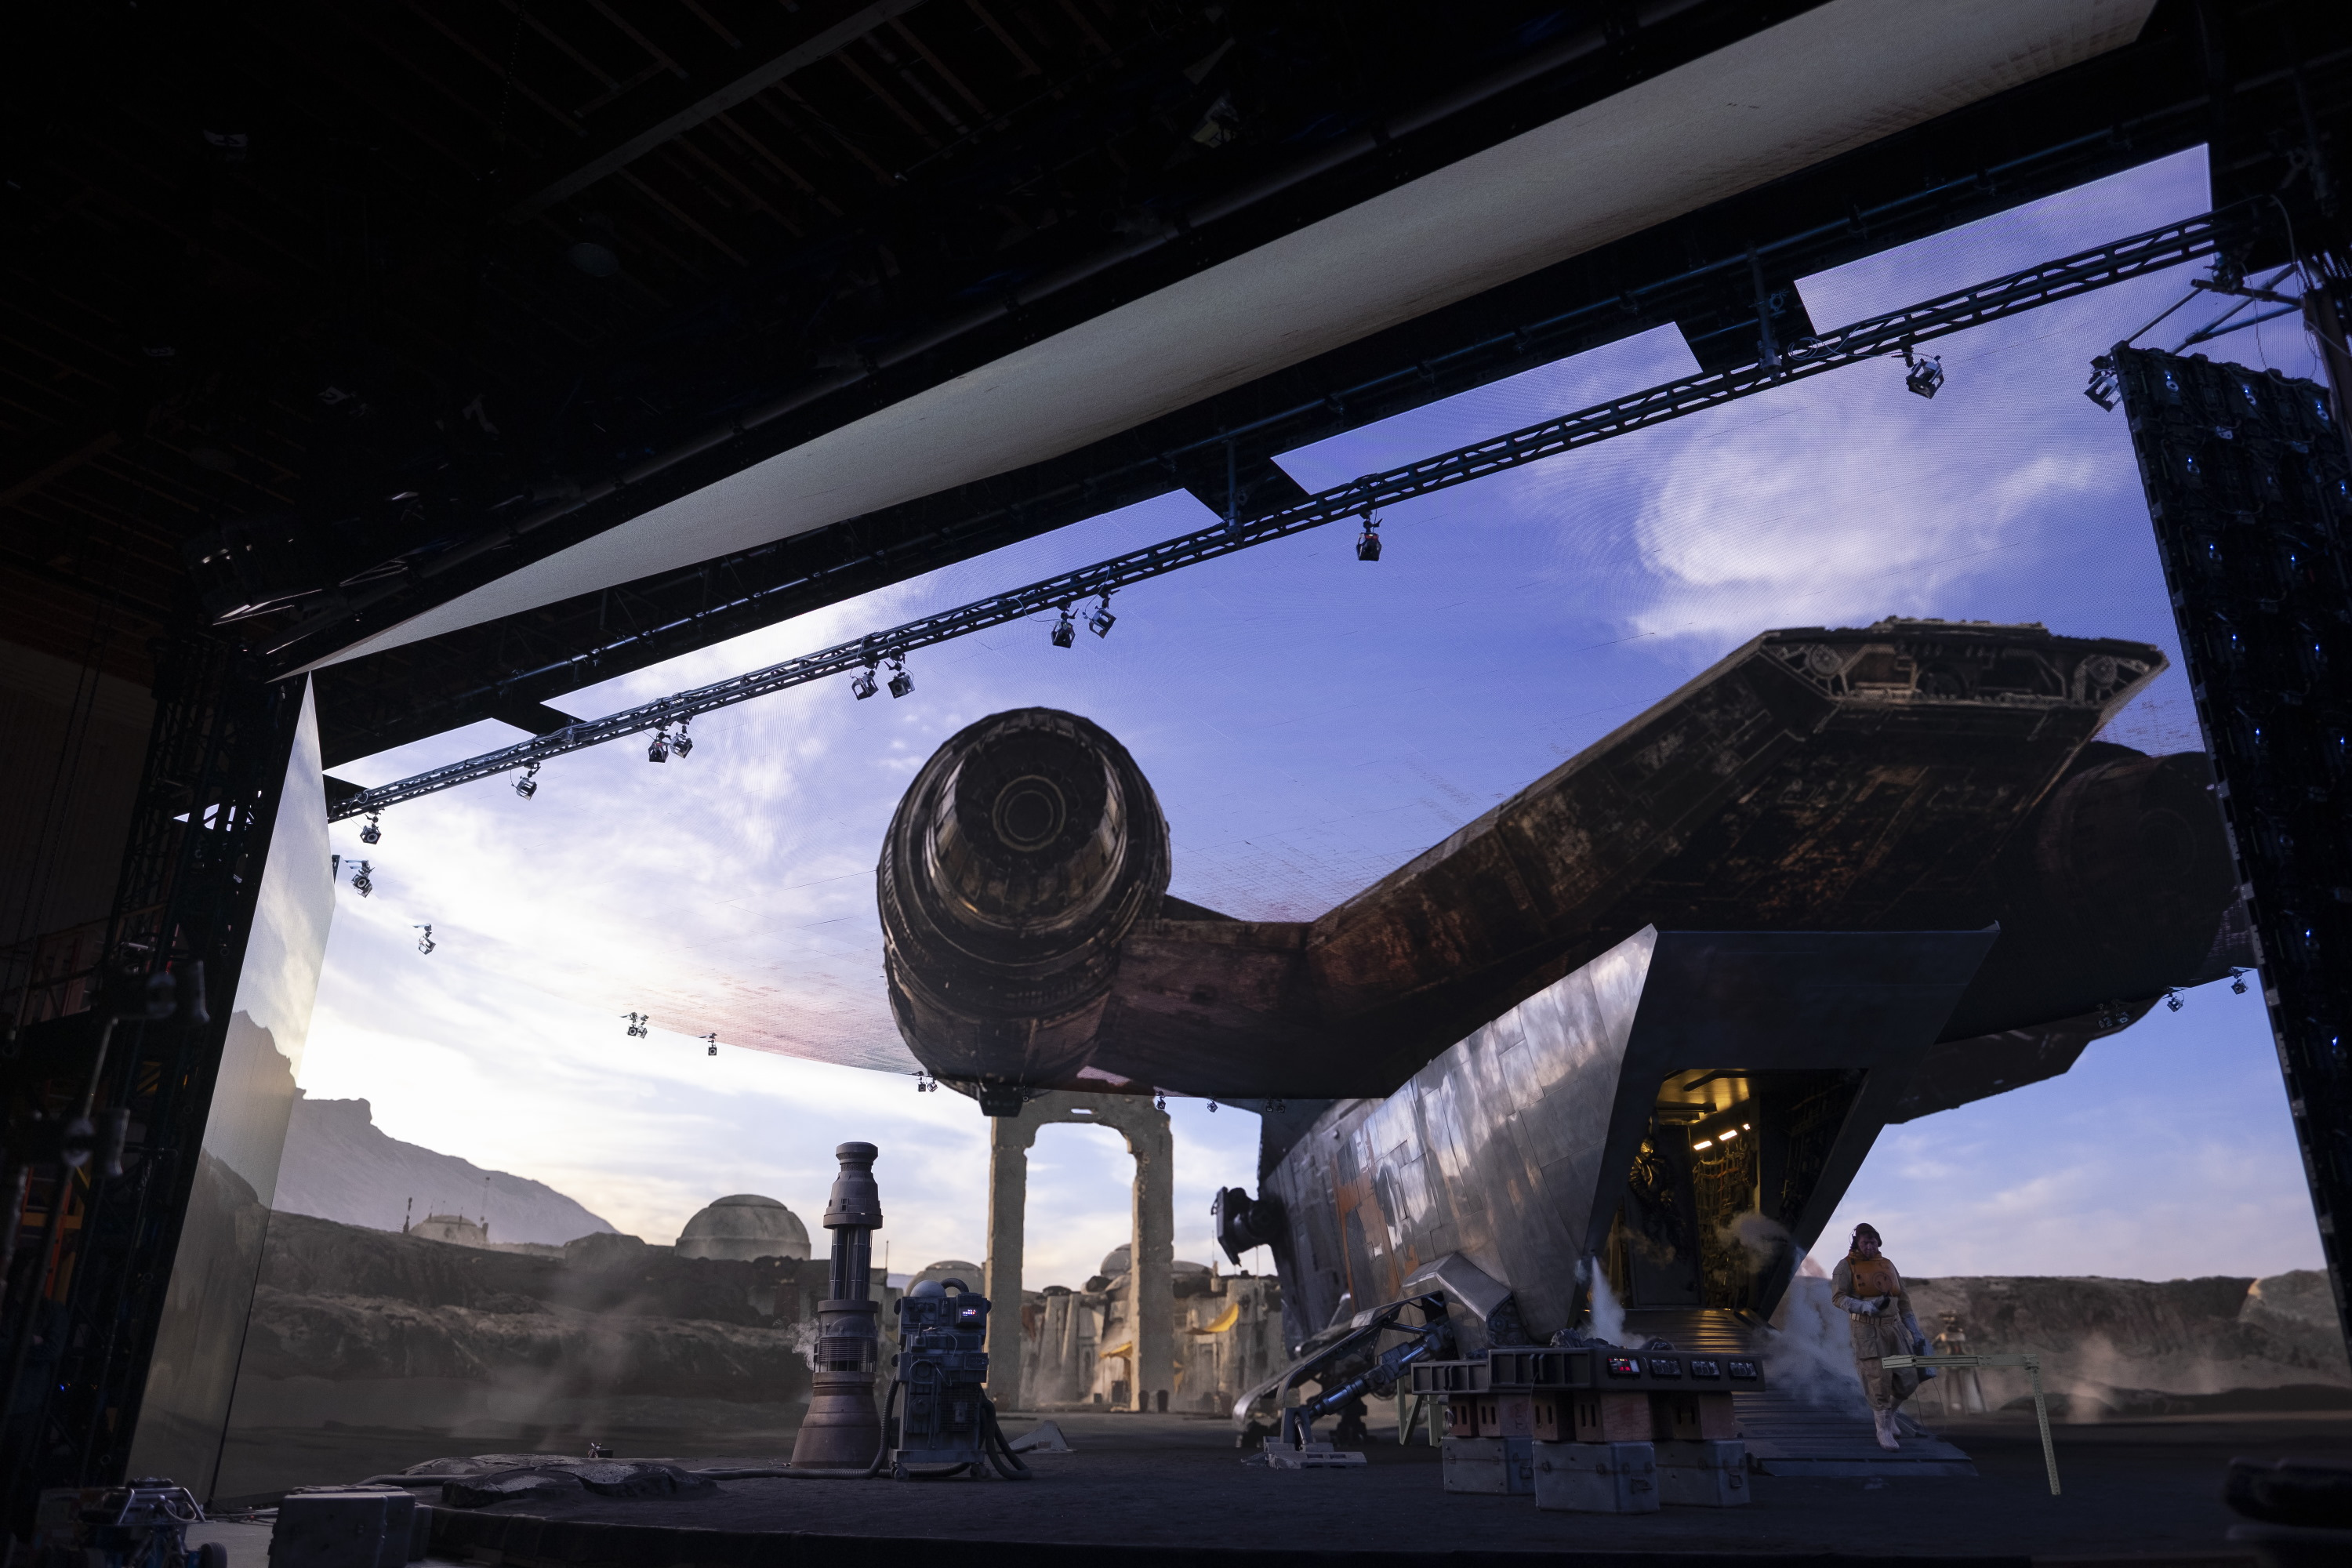 How 'The Mandalorian' and ILM invisibly reinvented film and TV production |  TechCrunch